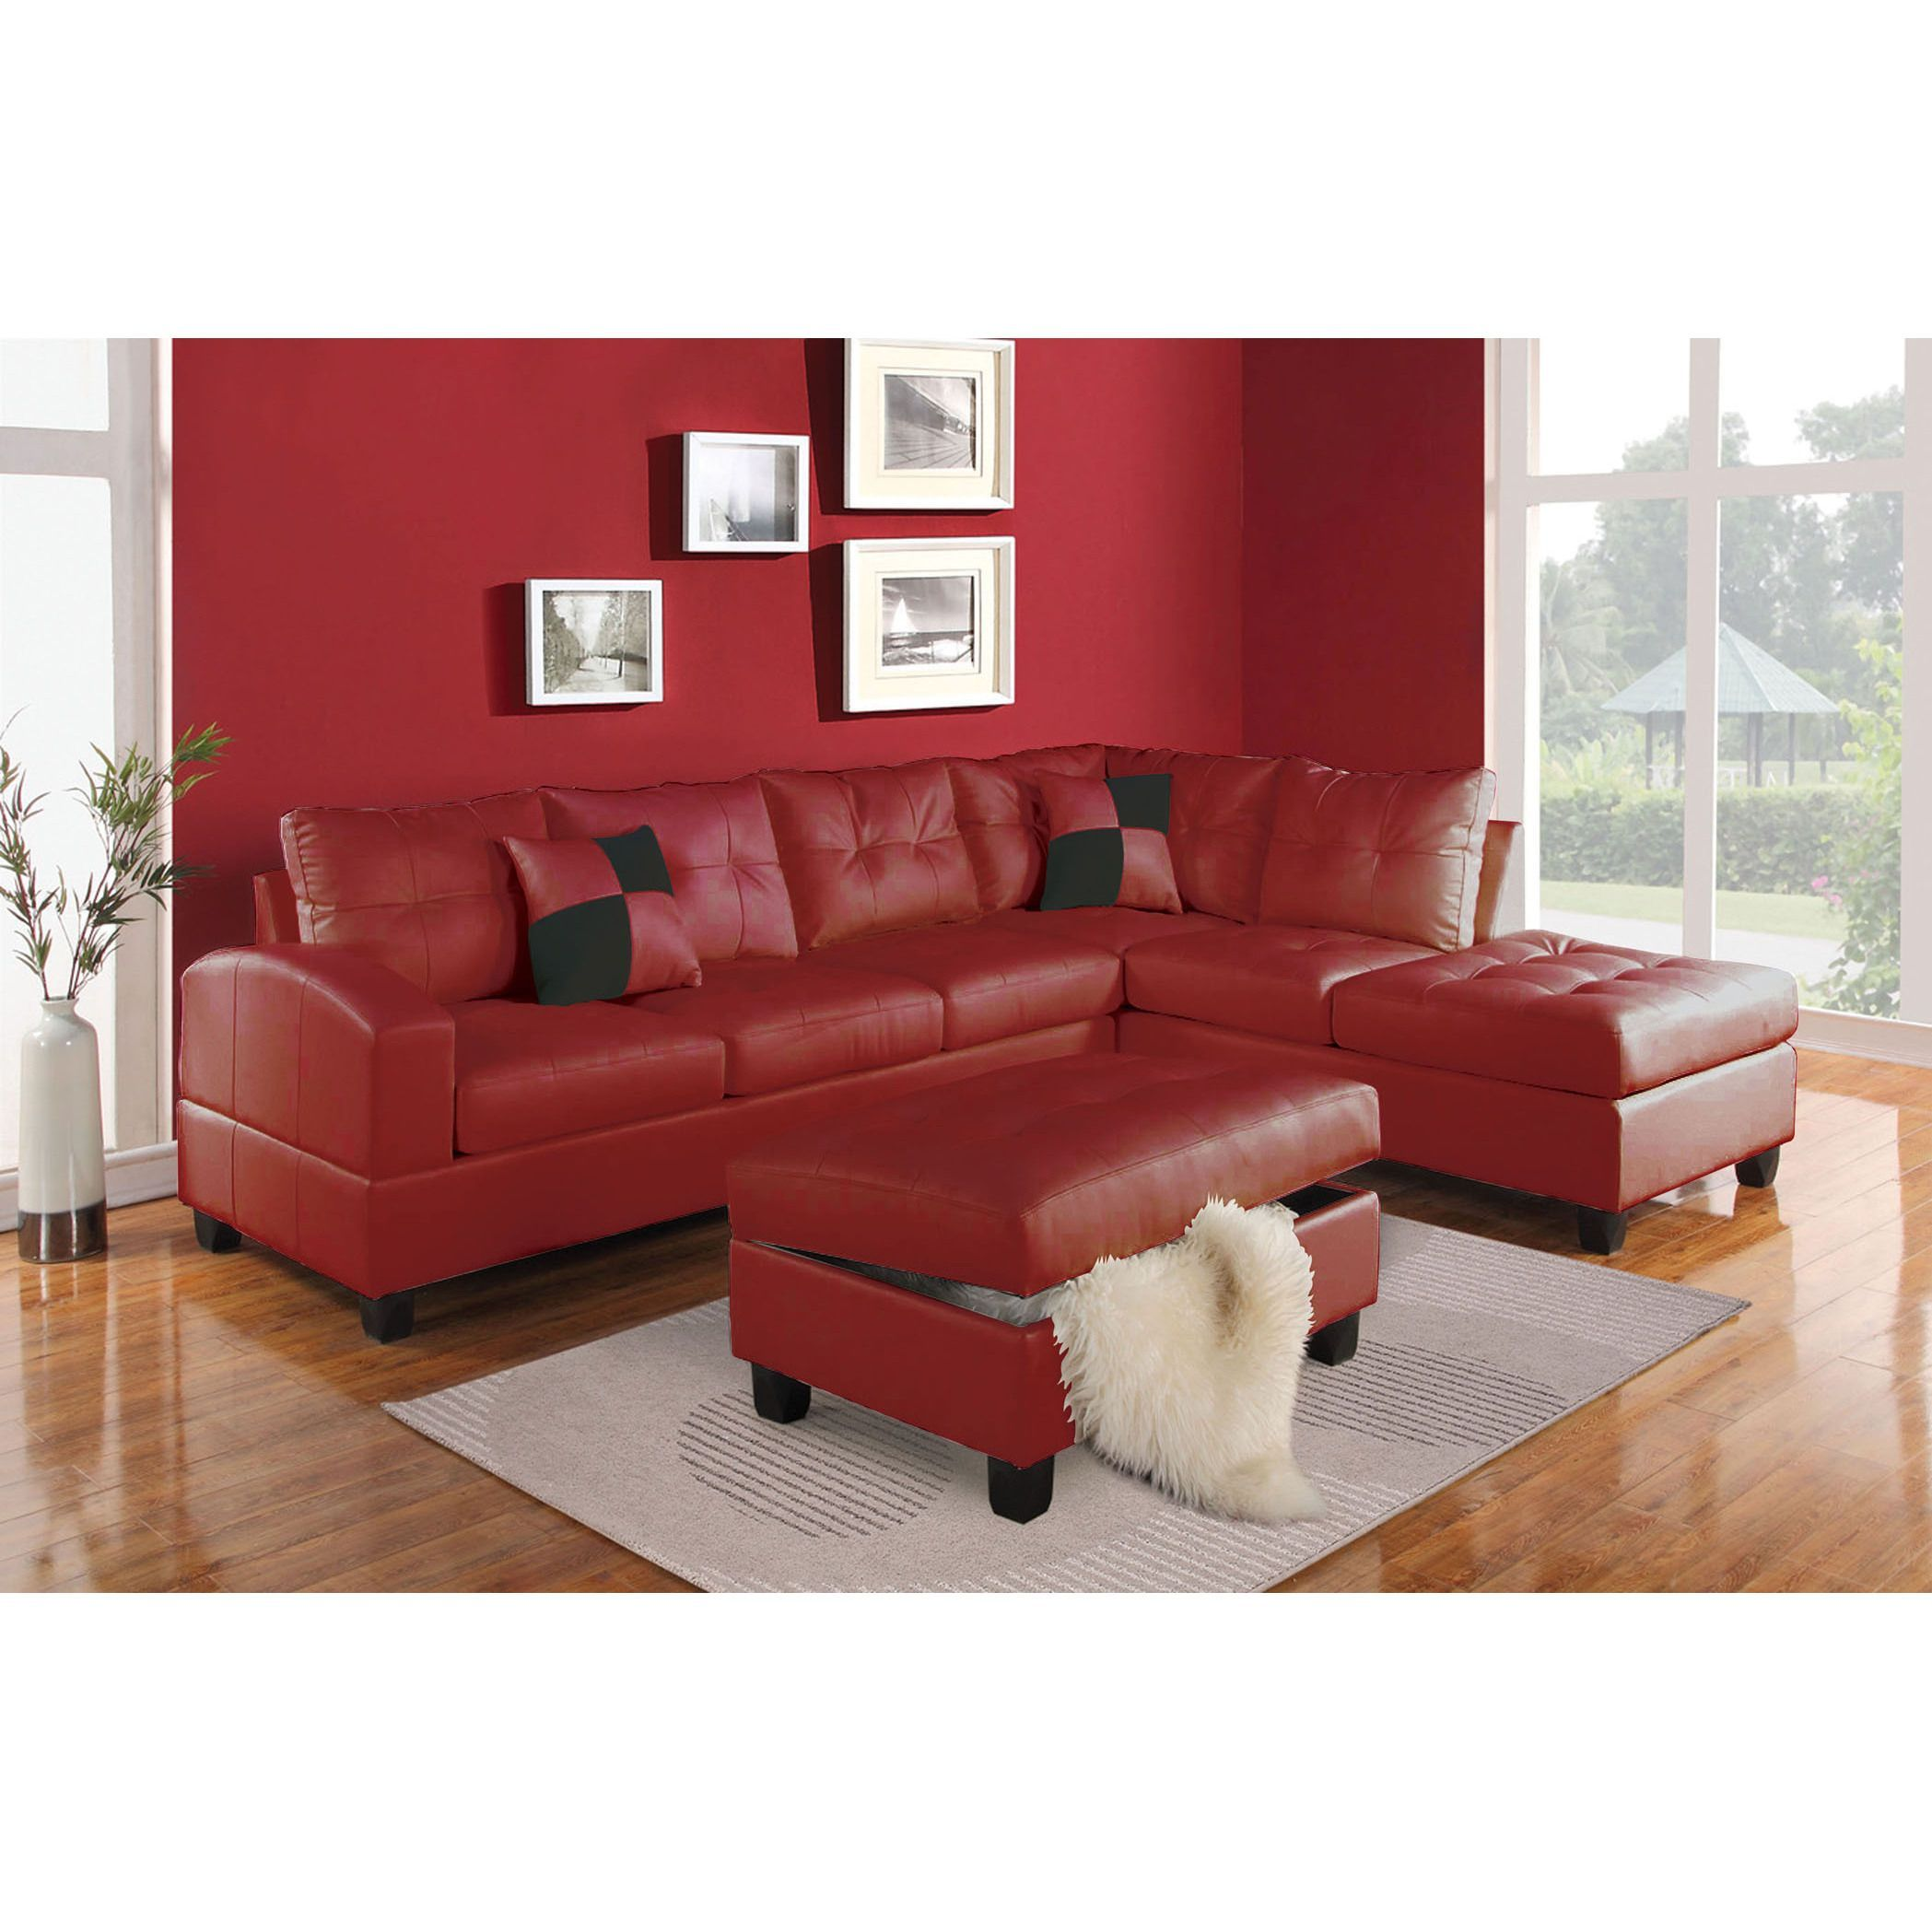 Acme kiva match sectional sofa red leather sectionals - Red leather living room furniture set ...